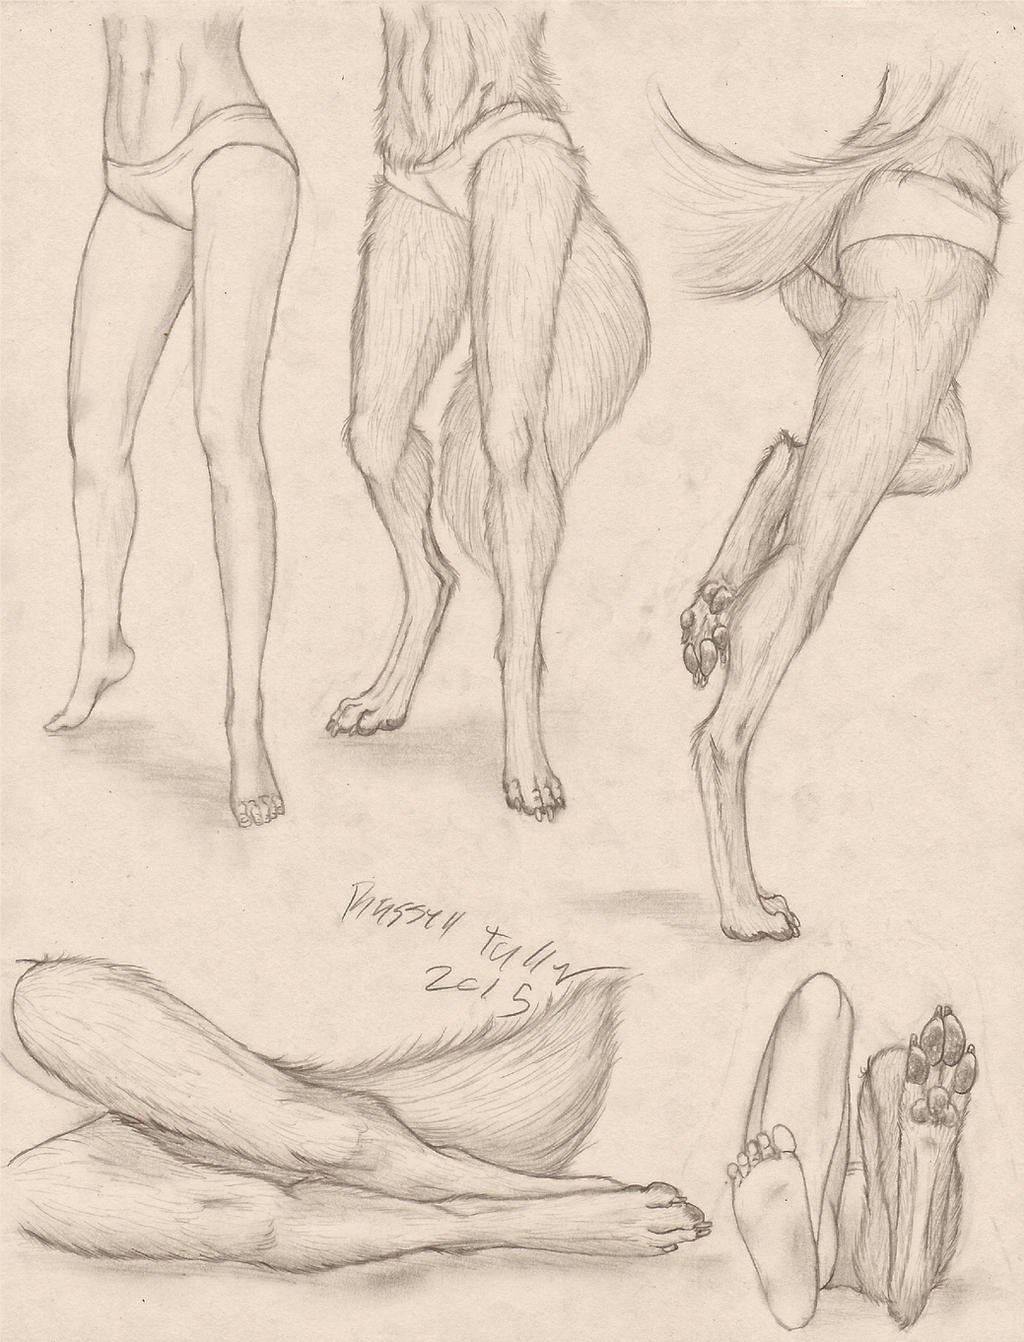 Anthro Canine Female Lower Body Study by RussellTuller on DeviantArt